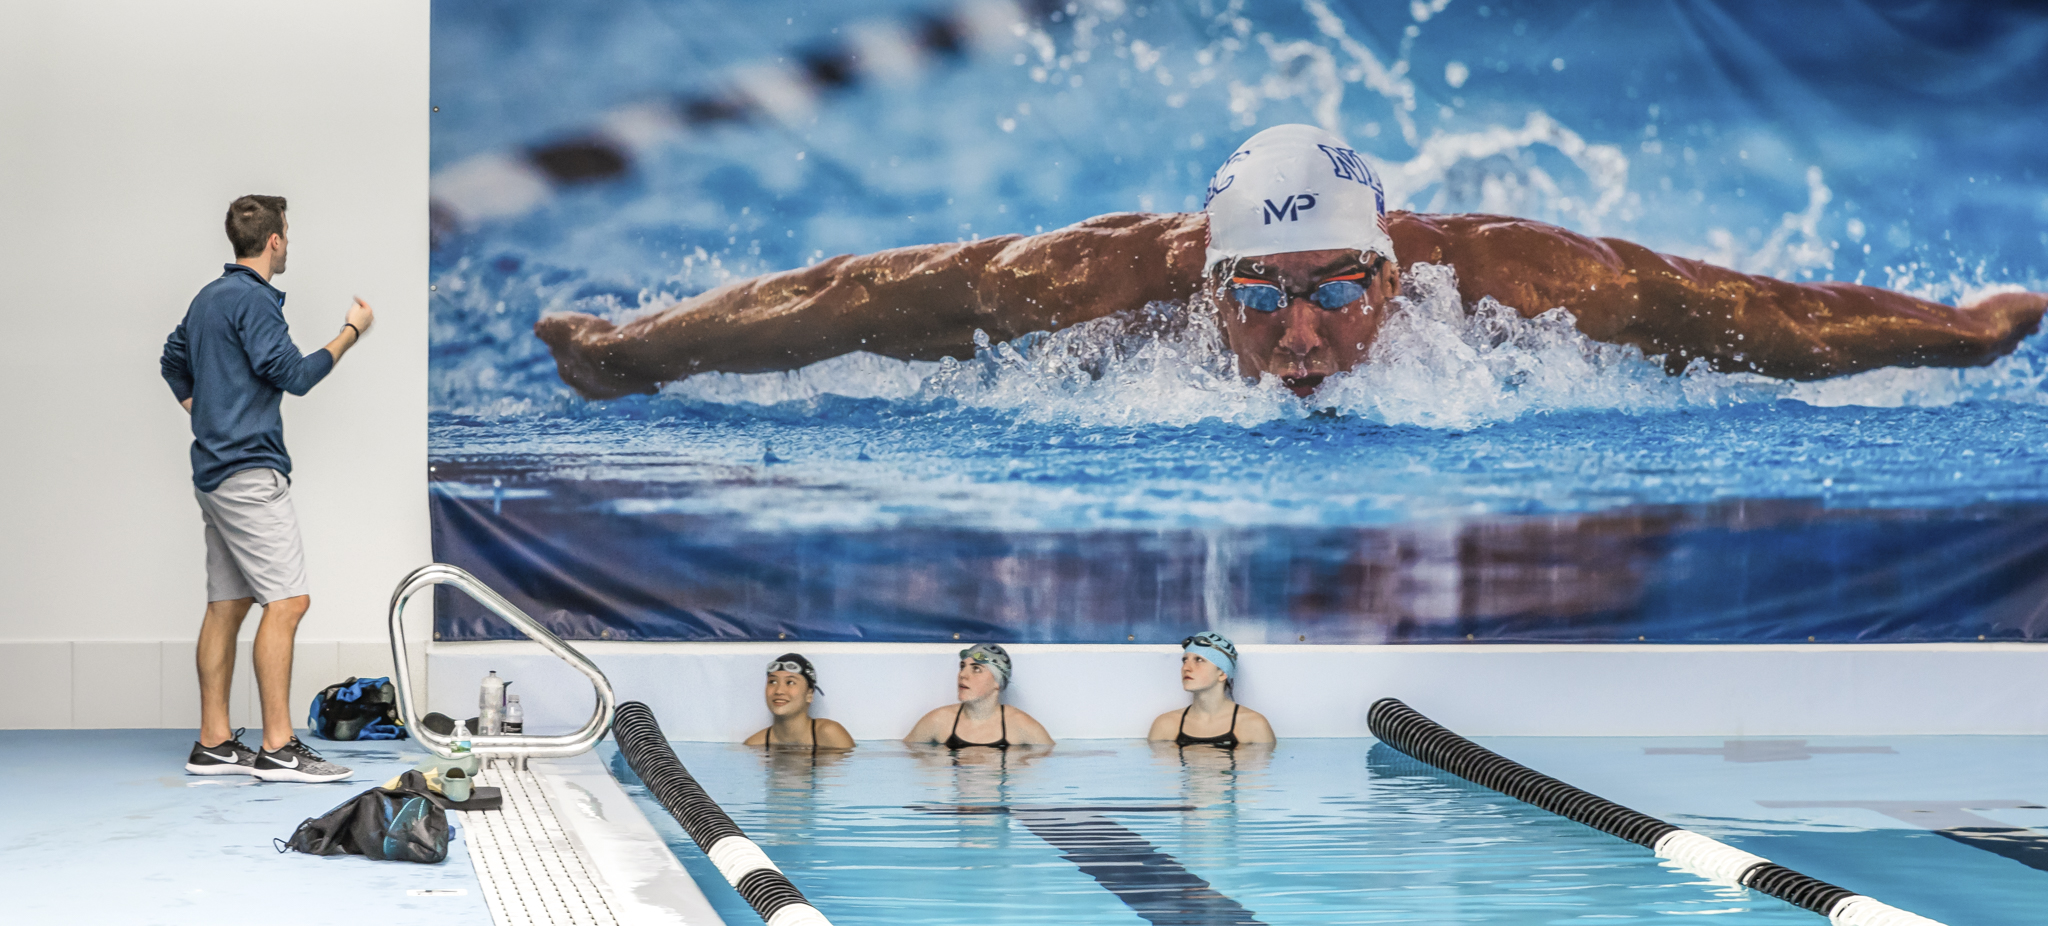 swimquest_2_commercial_Msparkphoto (1 of 1).jpg